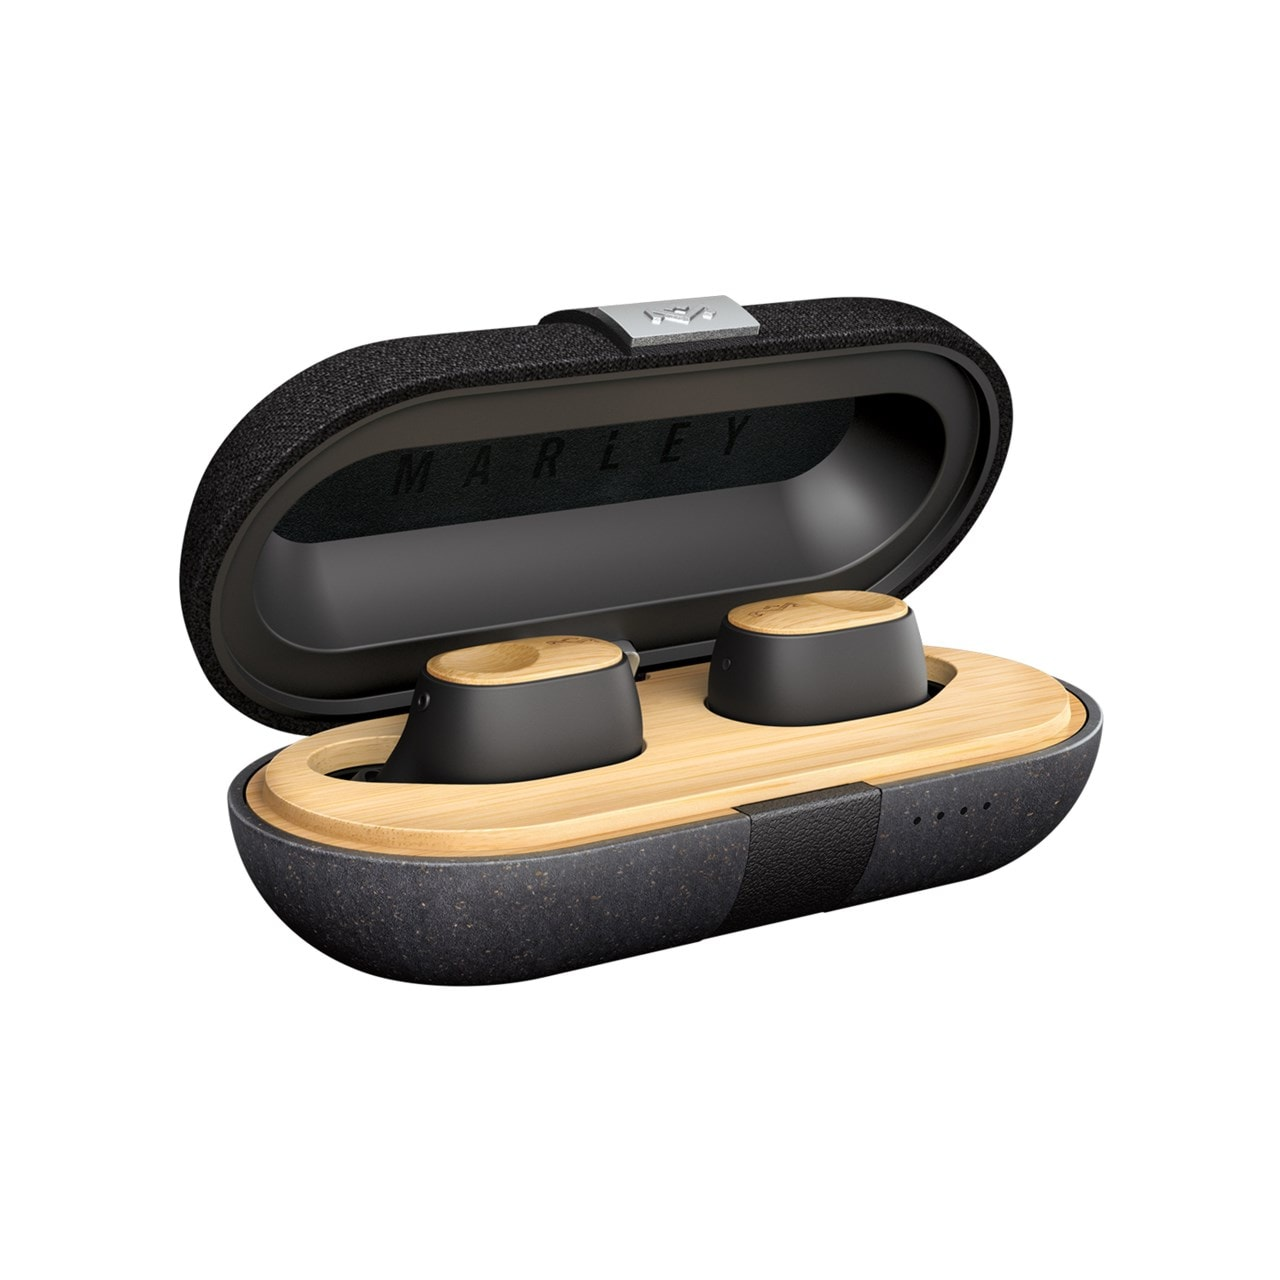 House Of Marley Liberate Air True Wireless Bluetooth Earphones - 1